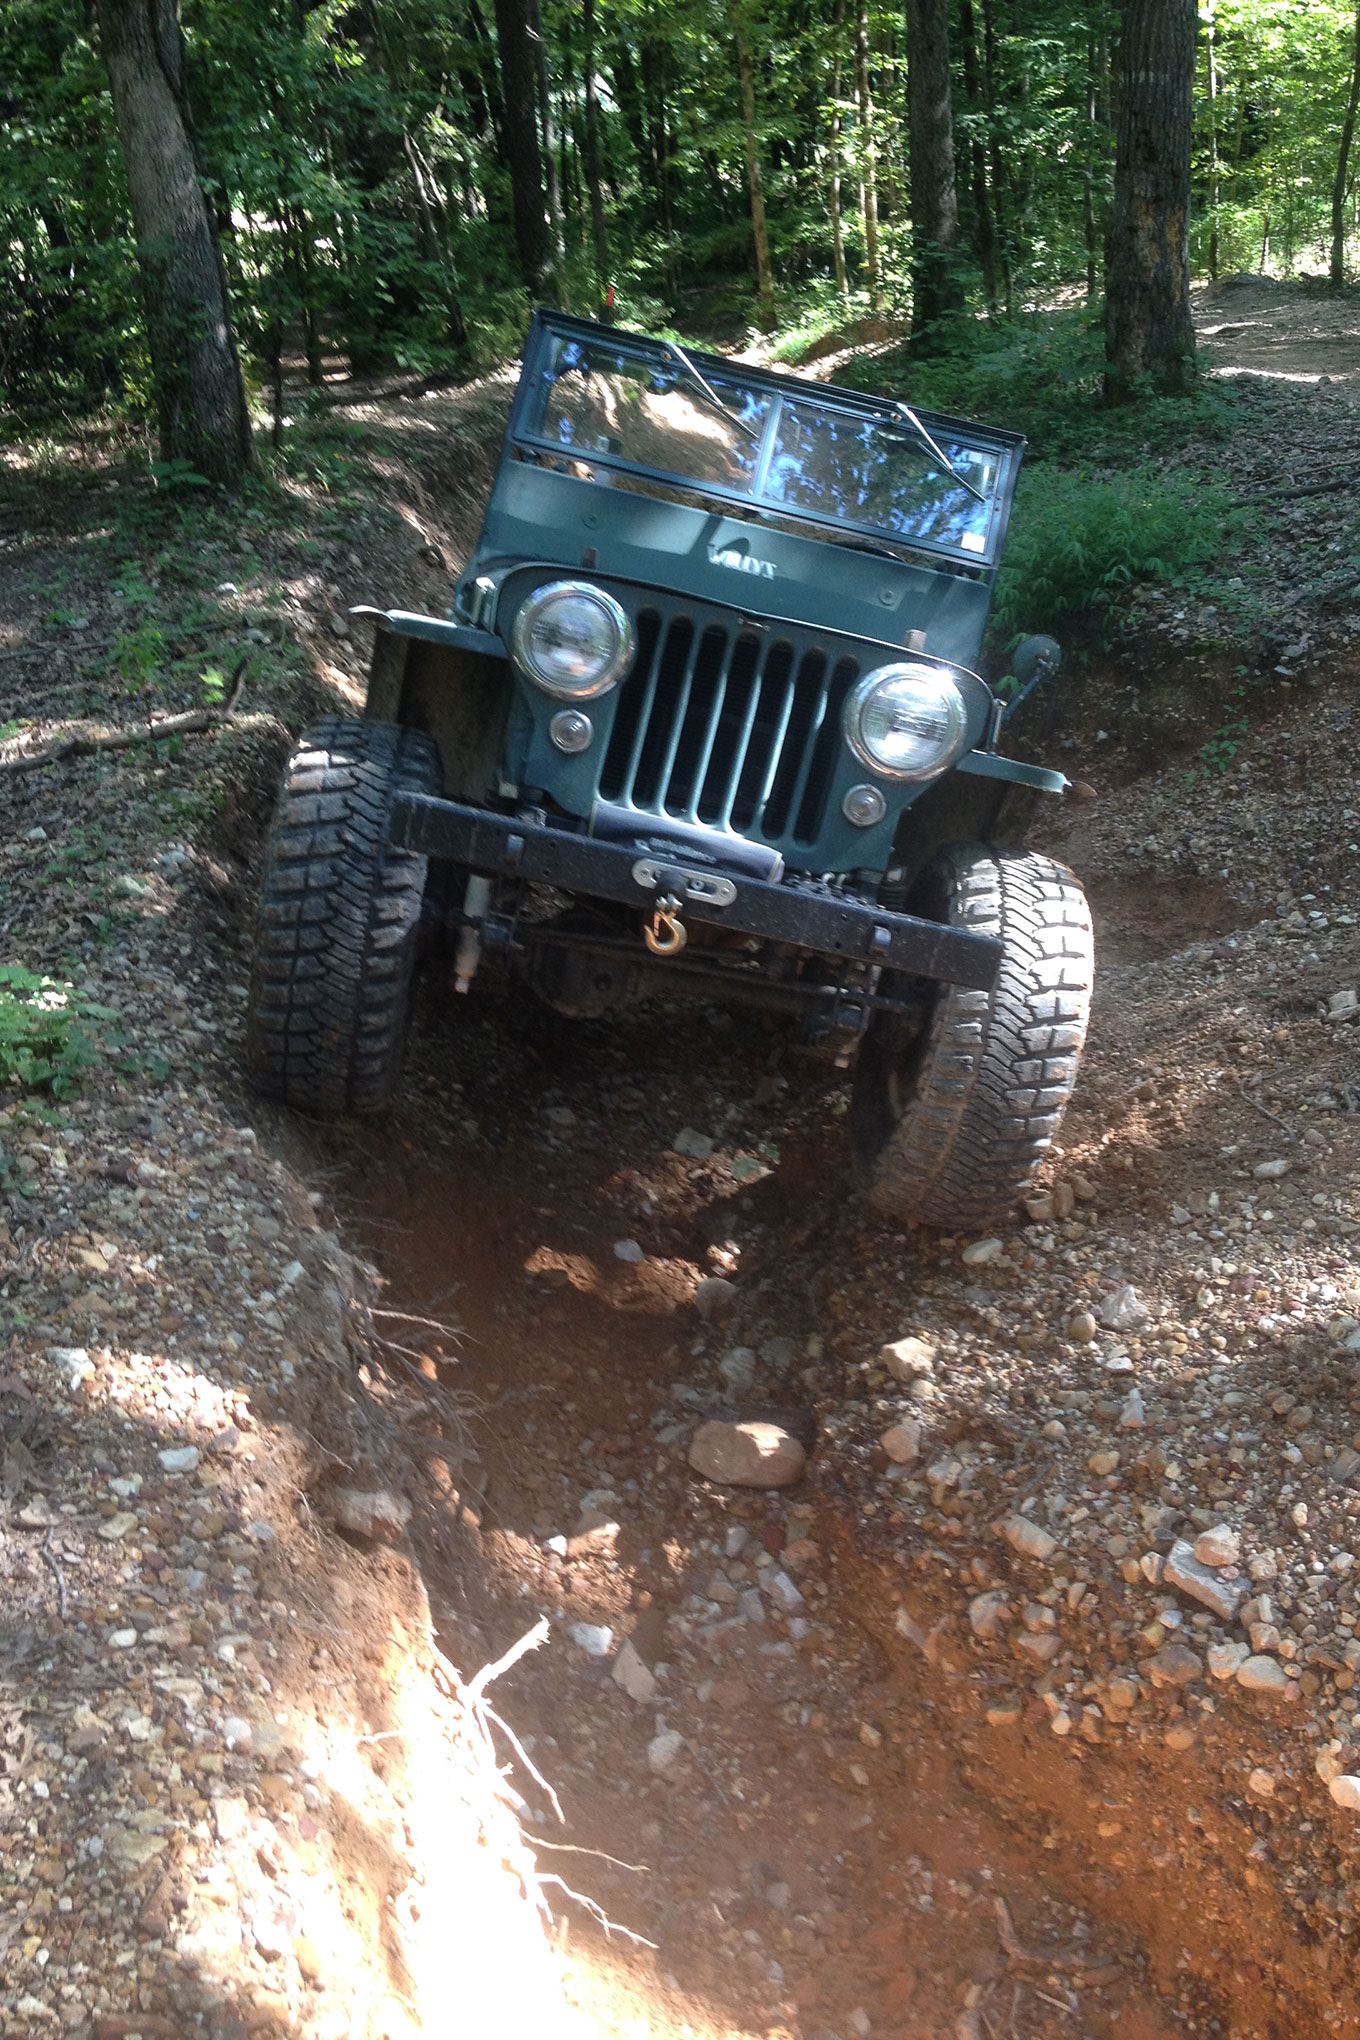 005 jeep willys flatfender cj early vintage old iron